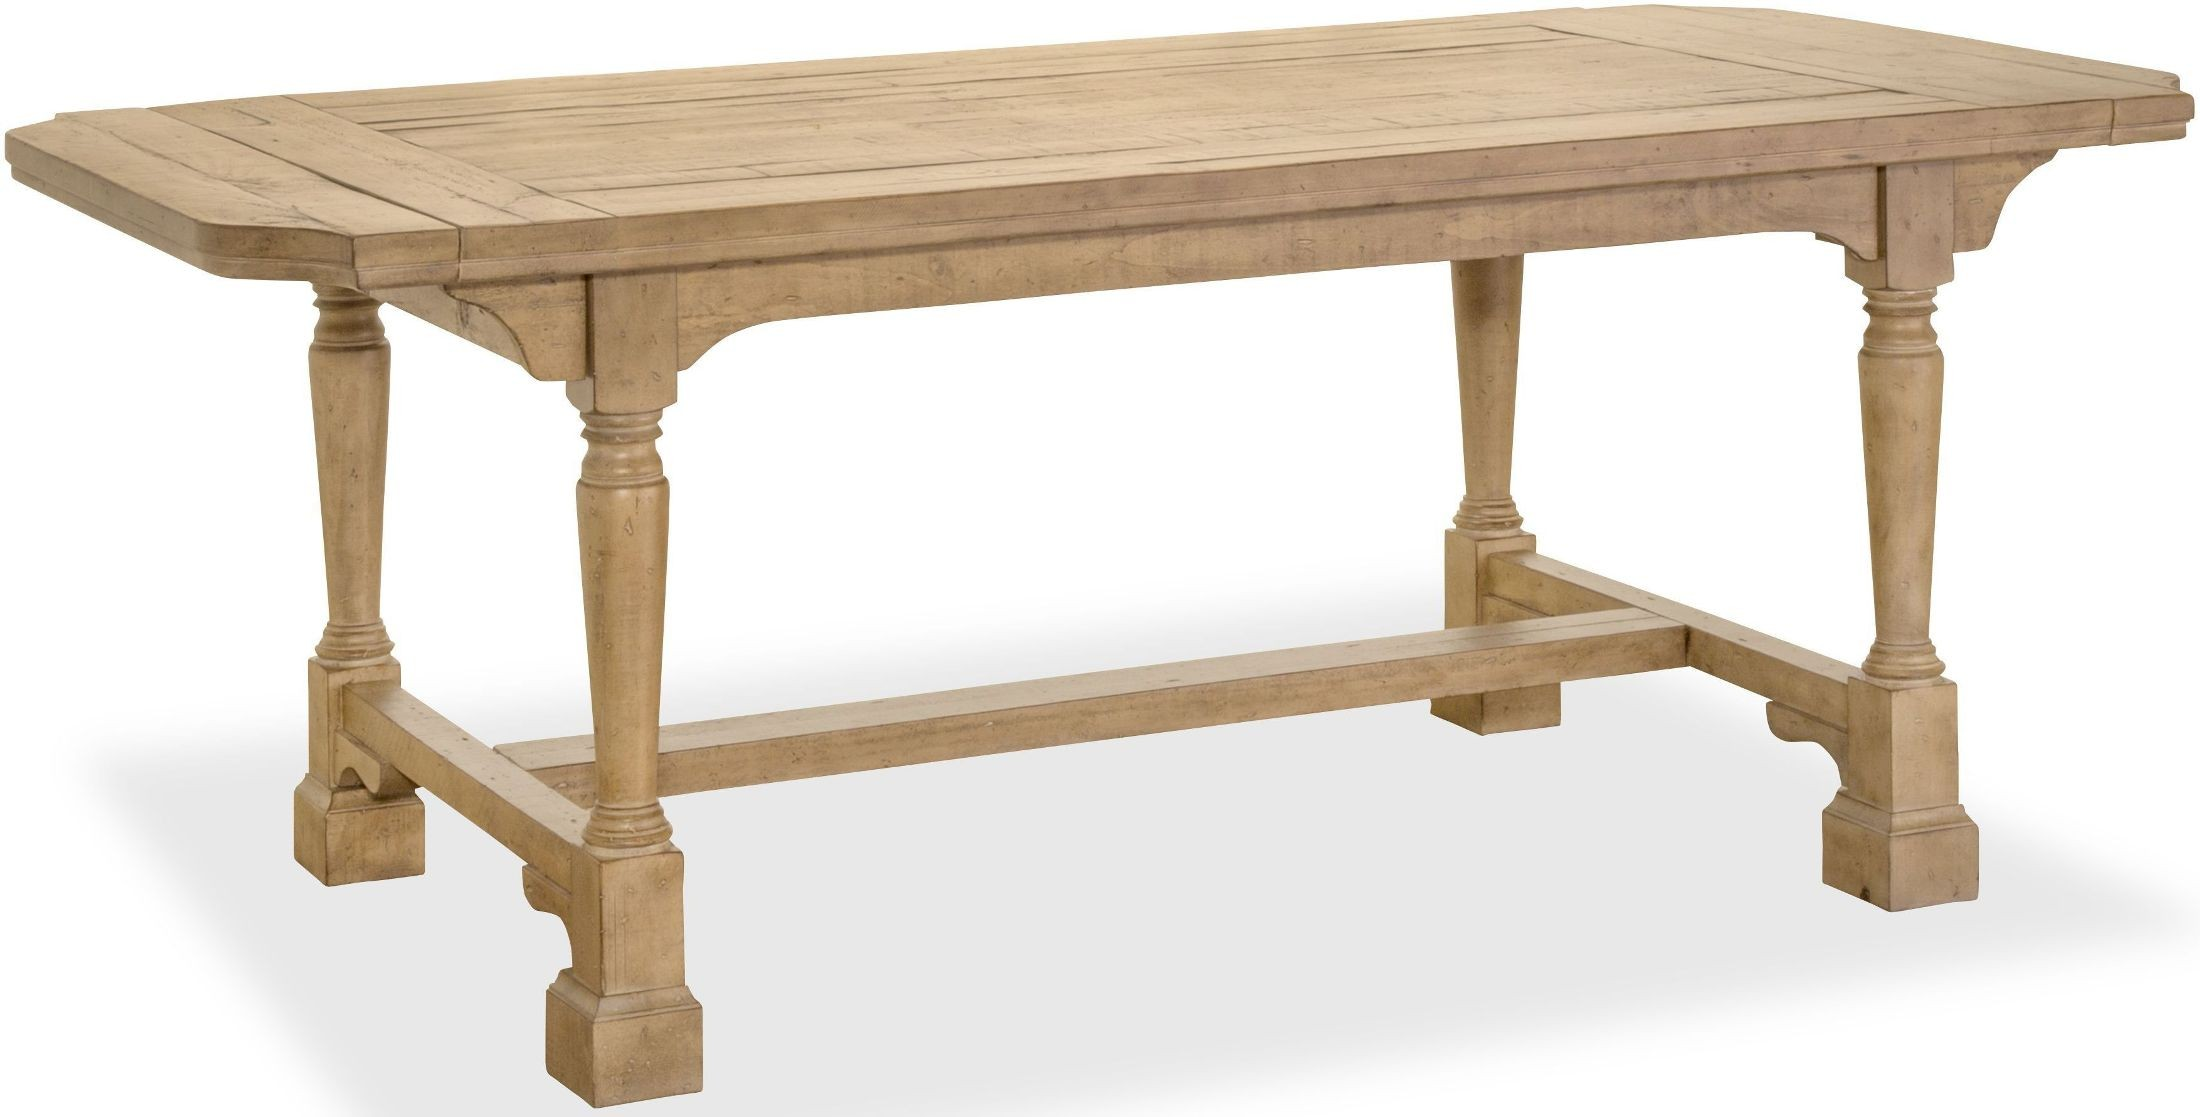 Graham Hills Cracked Wheat Extendable Rectangular Dining Table